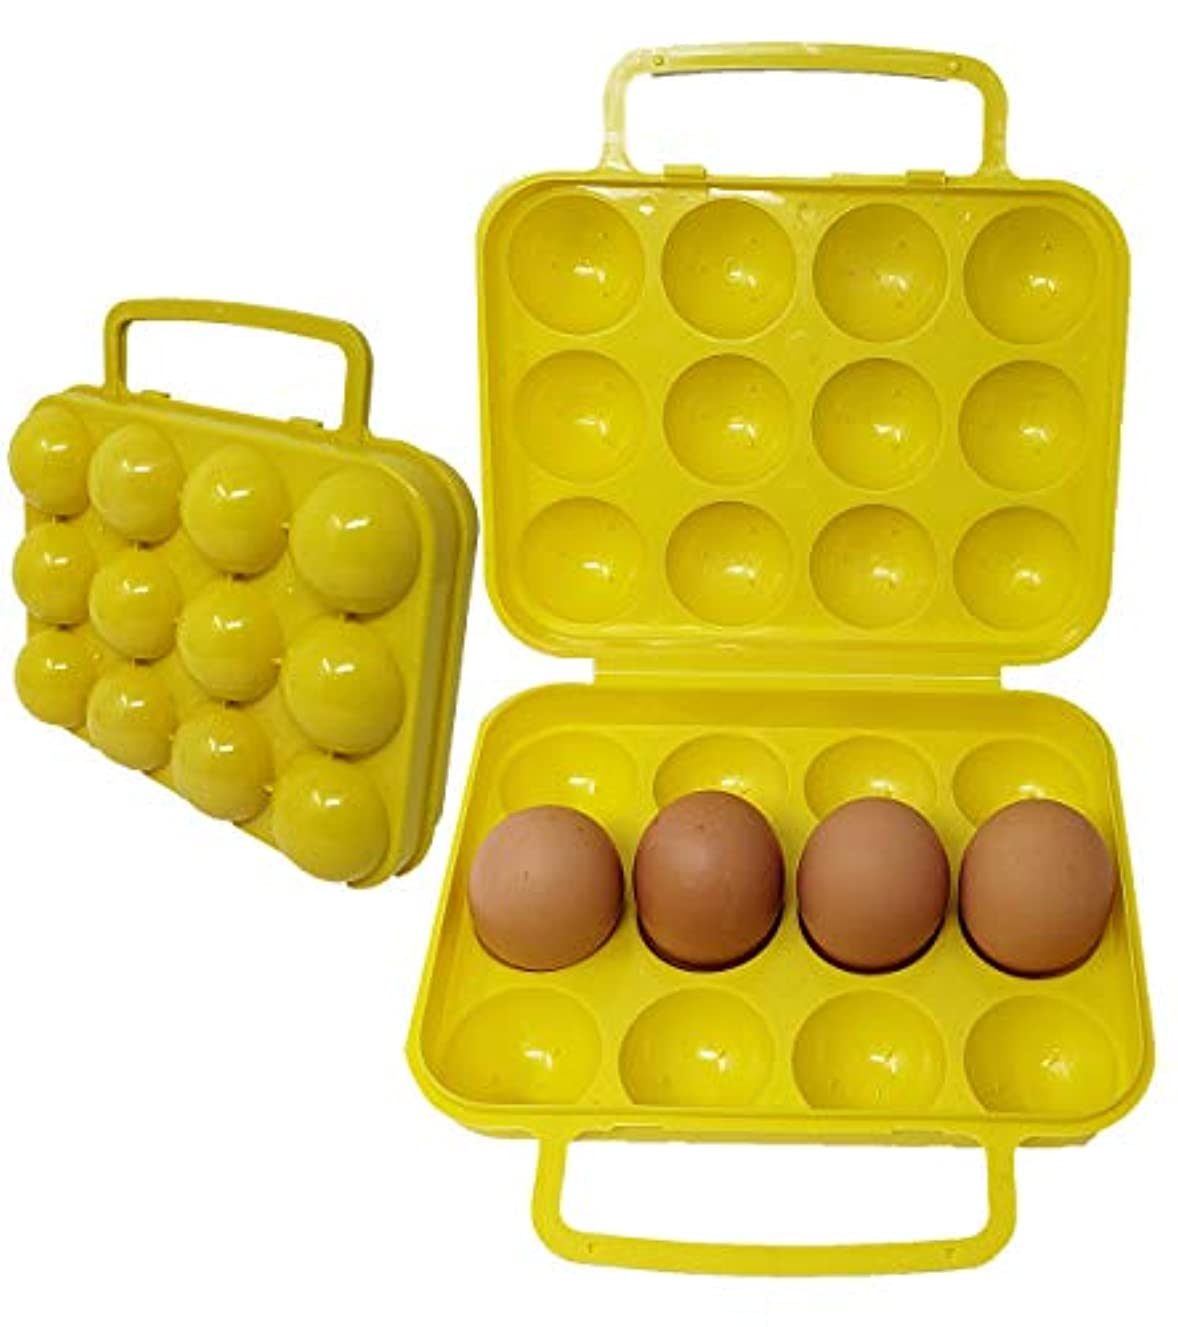 Portable Egg Case Carrier | Container Holder Tray with Handle & Lid 12 eggs tray